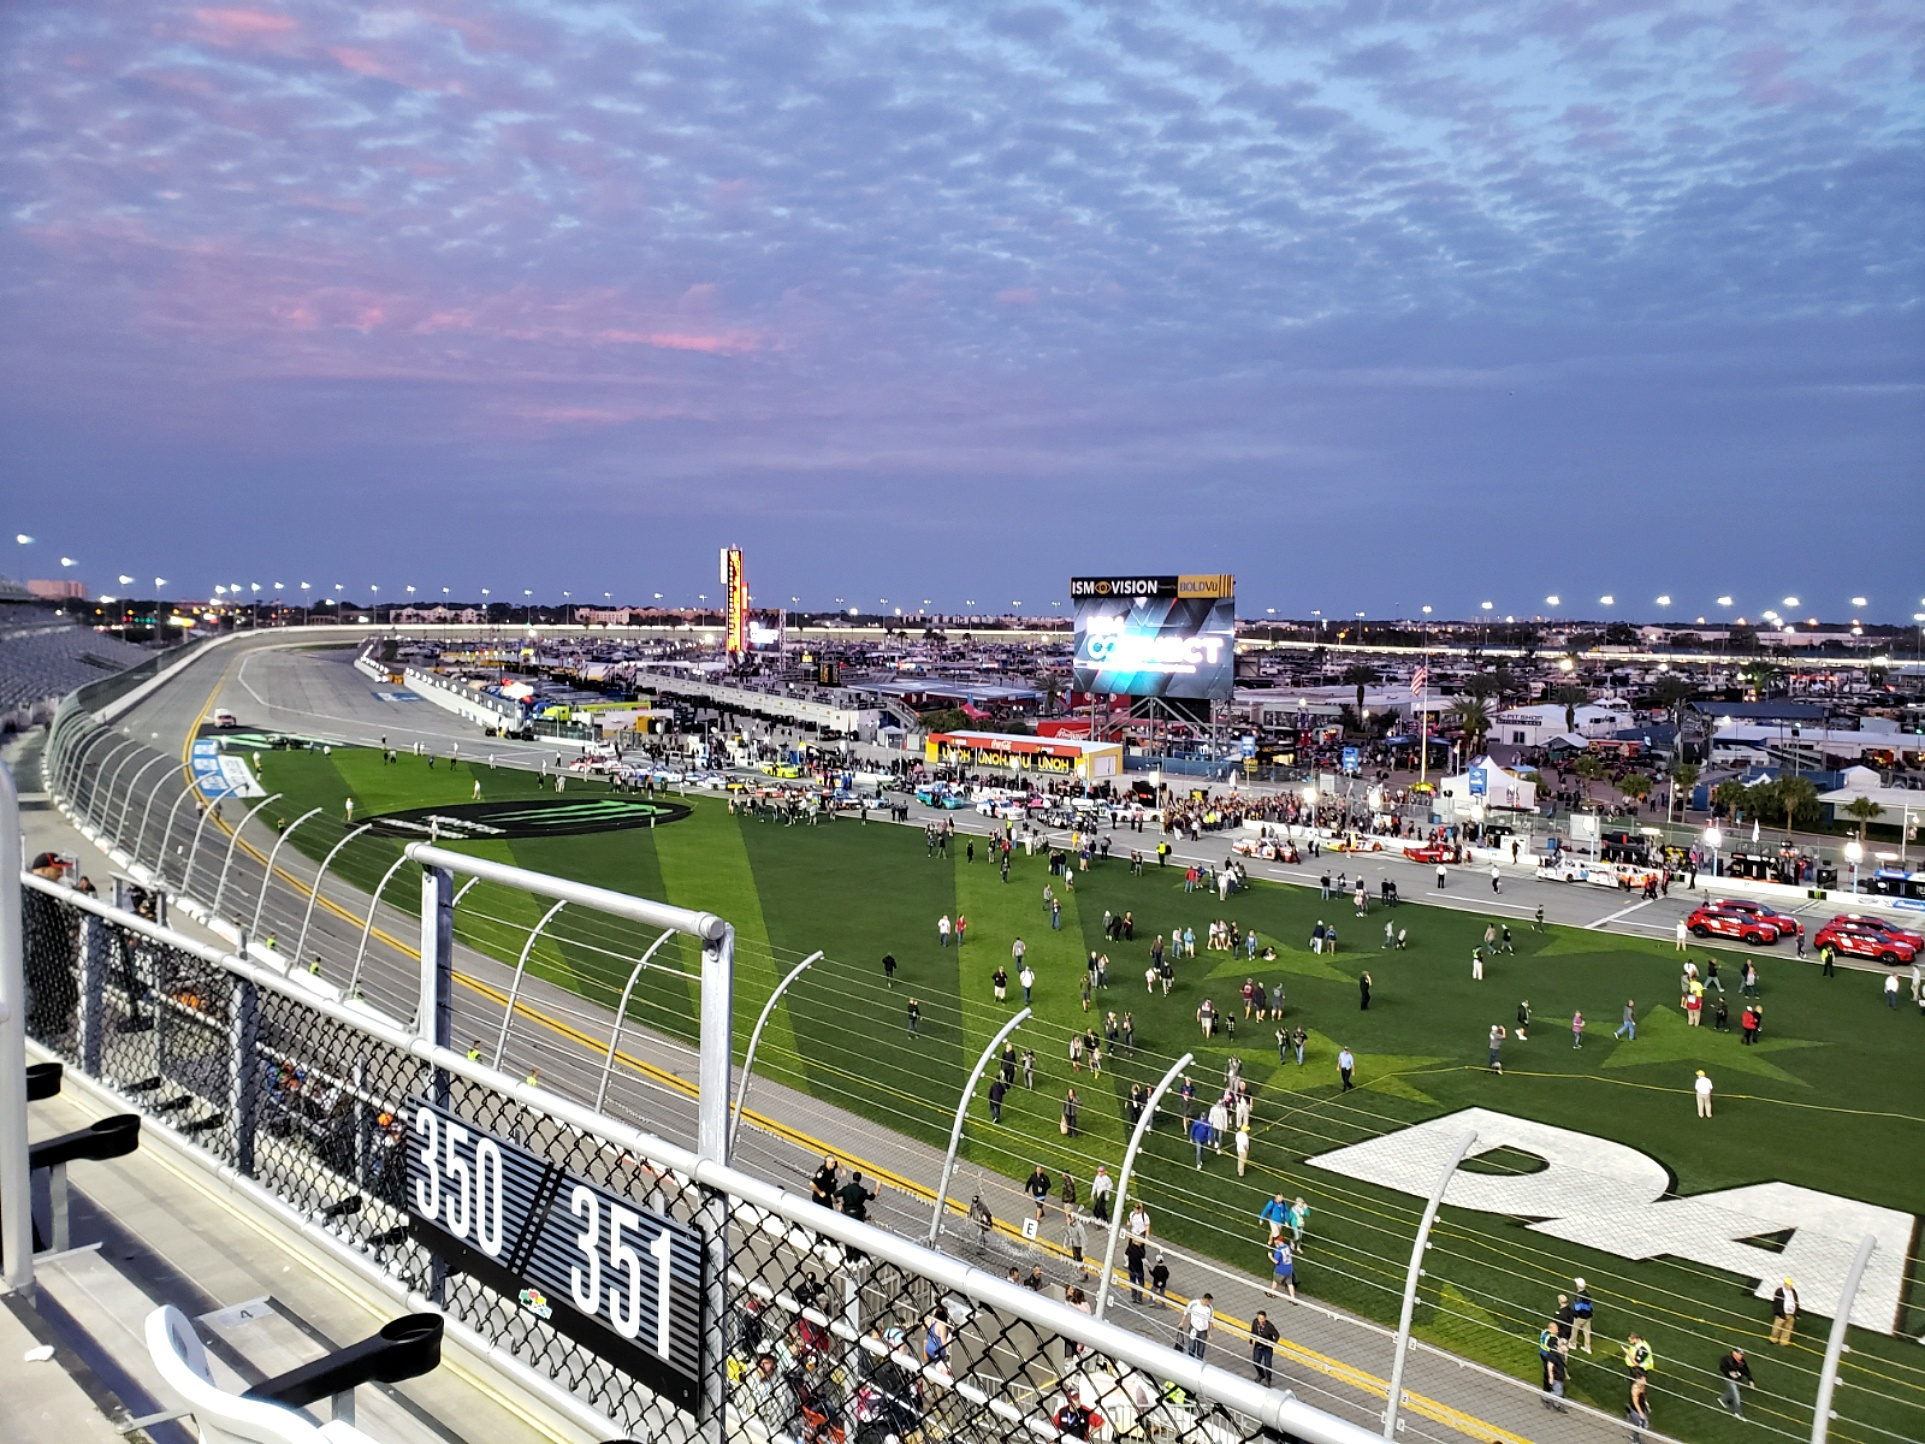 Daytona International Speedway Race schedule